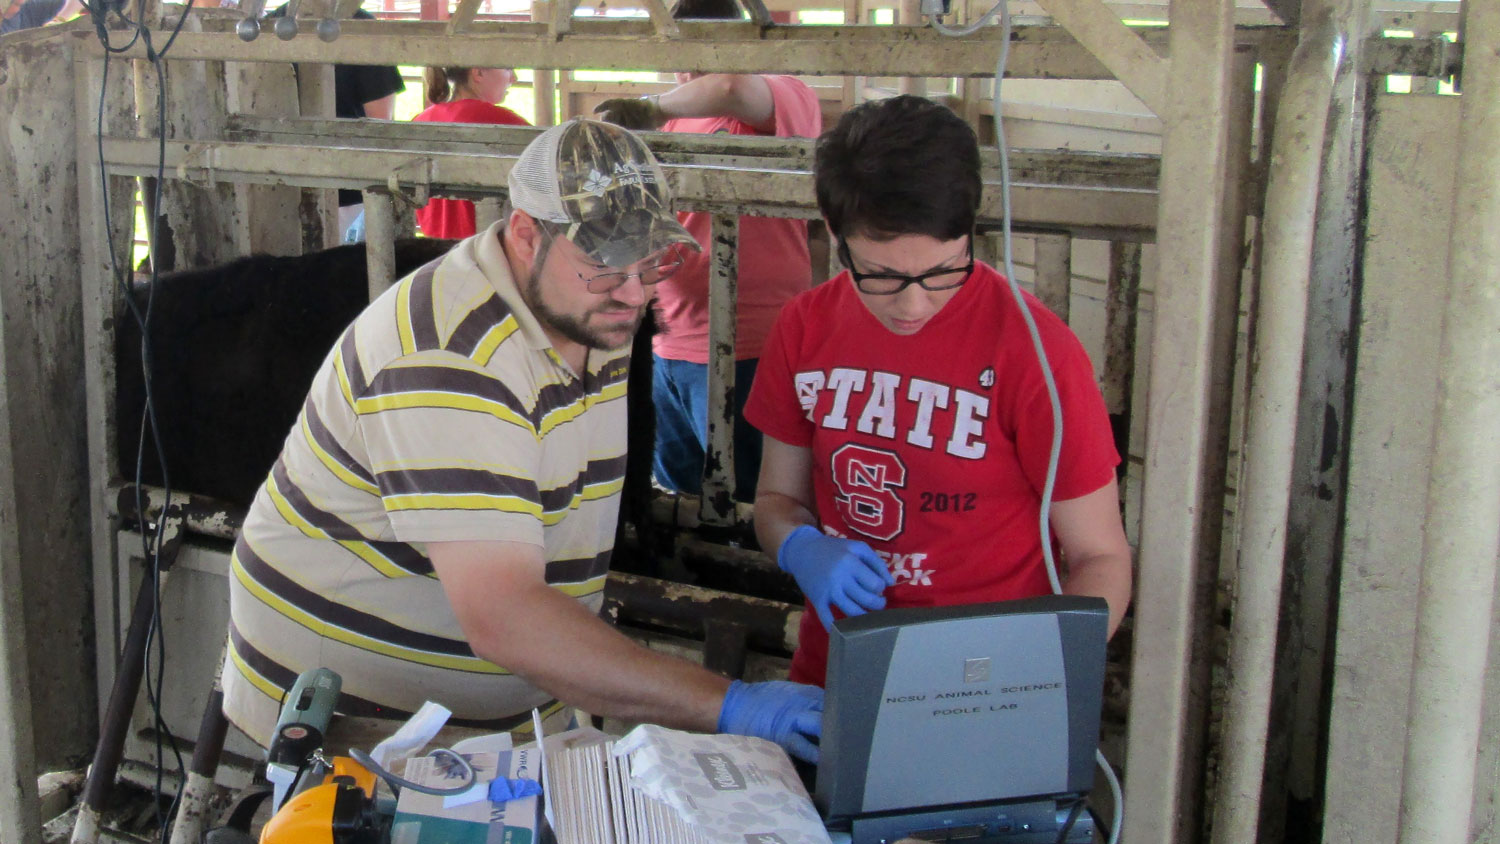 A man and woman wearing an NC State t-shirt work on cattle research.